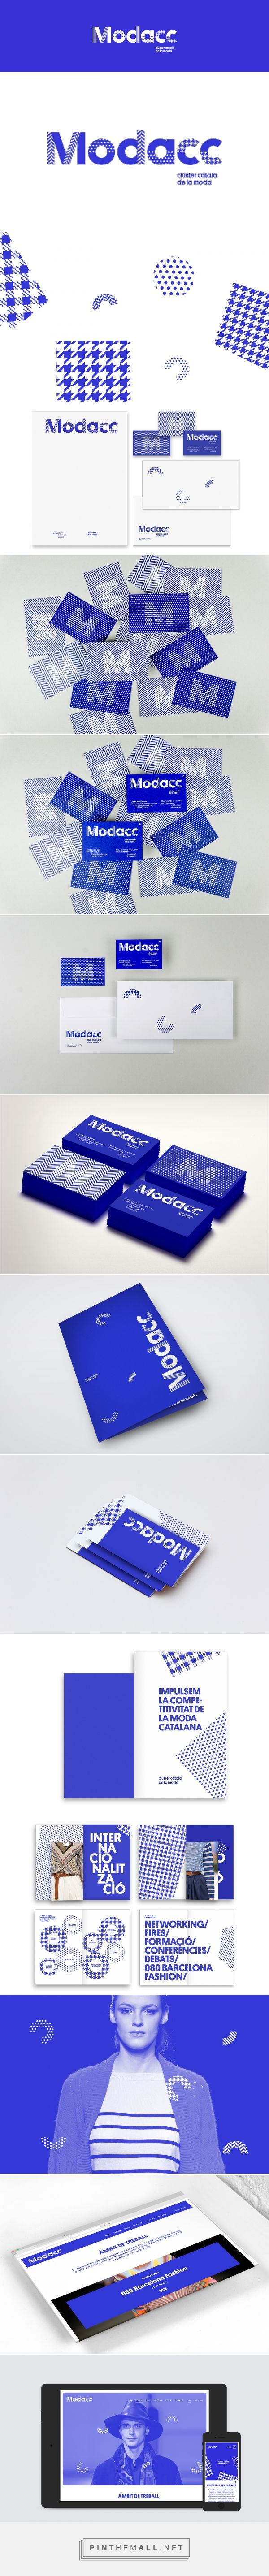 Modacc naming & identity on Behance https://www.behance.net/gallery/34319729/Modacc-naming-identity?utm_medium=email&utm_source=transactional&utm_campaign=activity-digest - created via https://pinthemall.net